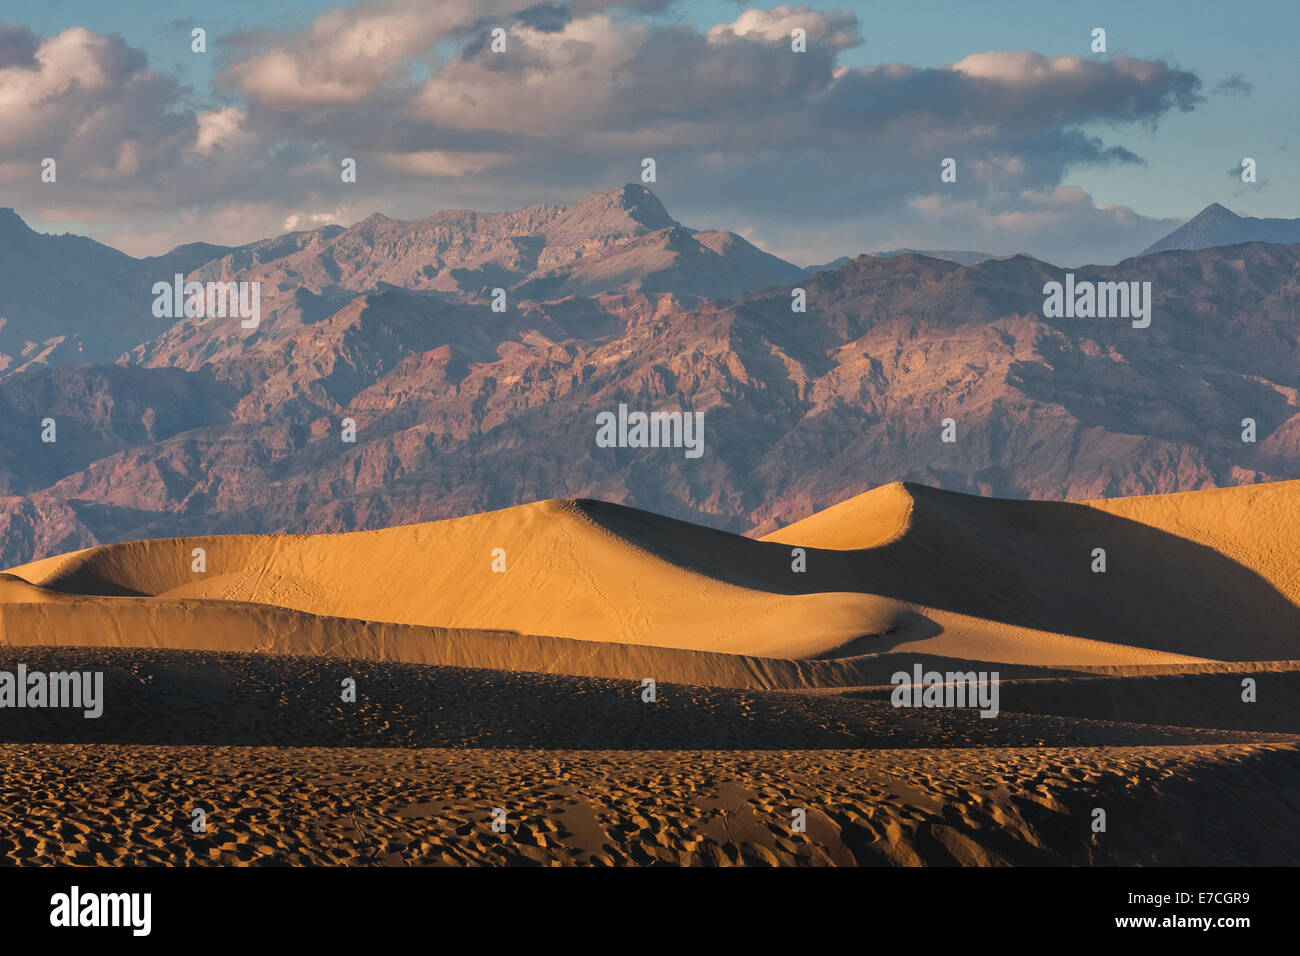 Early morning sunlight, Mesquite Flat sand dunes, Death Valley National Park, California, USA - Stock Image